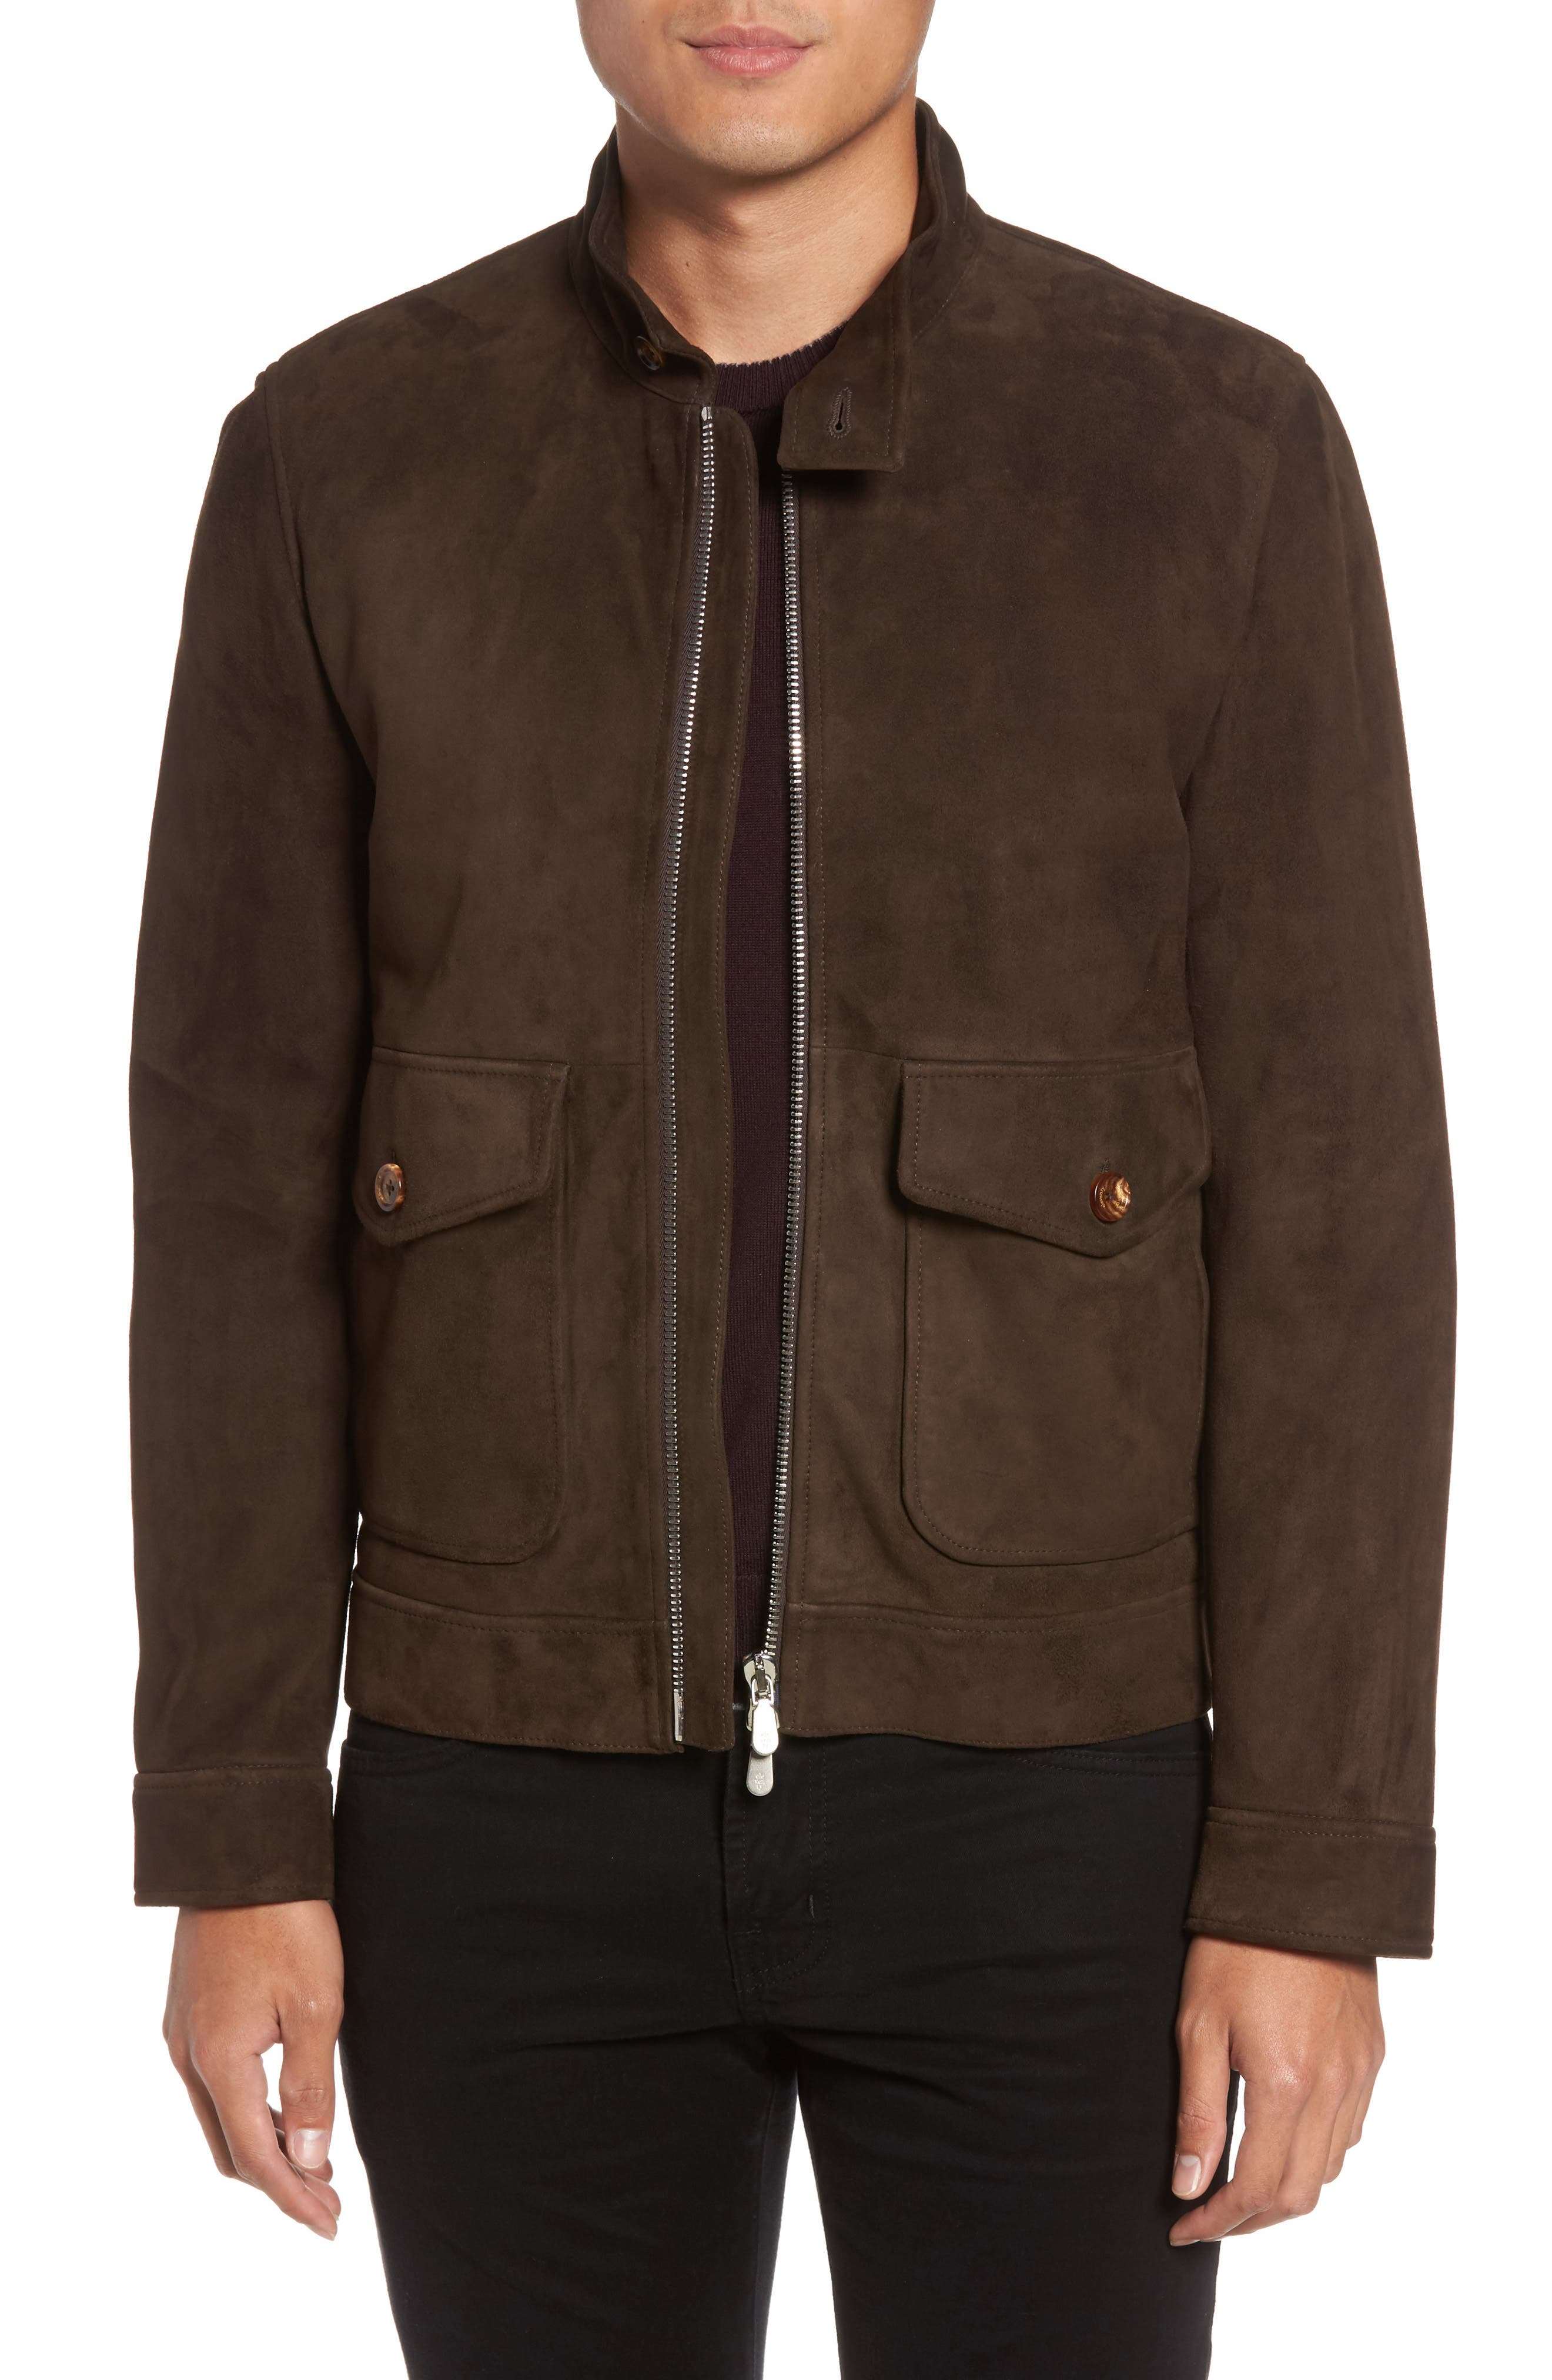 Suede Jacket,                             Main thumbnail 1, color,                             Chocolate Brown